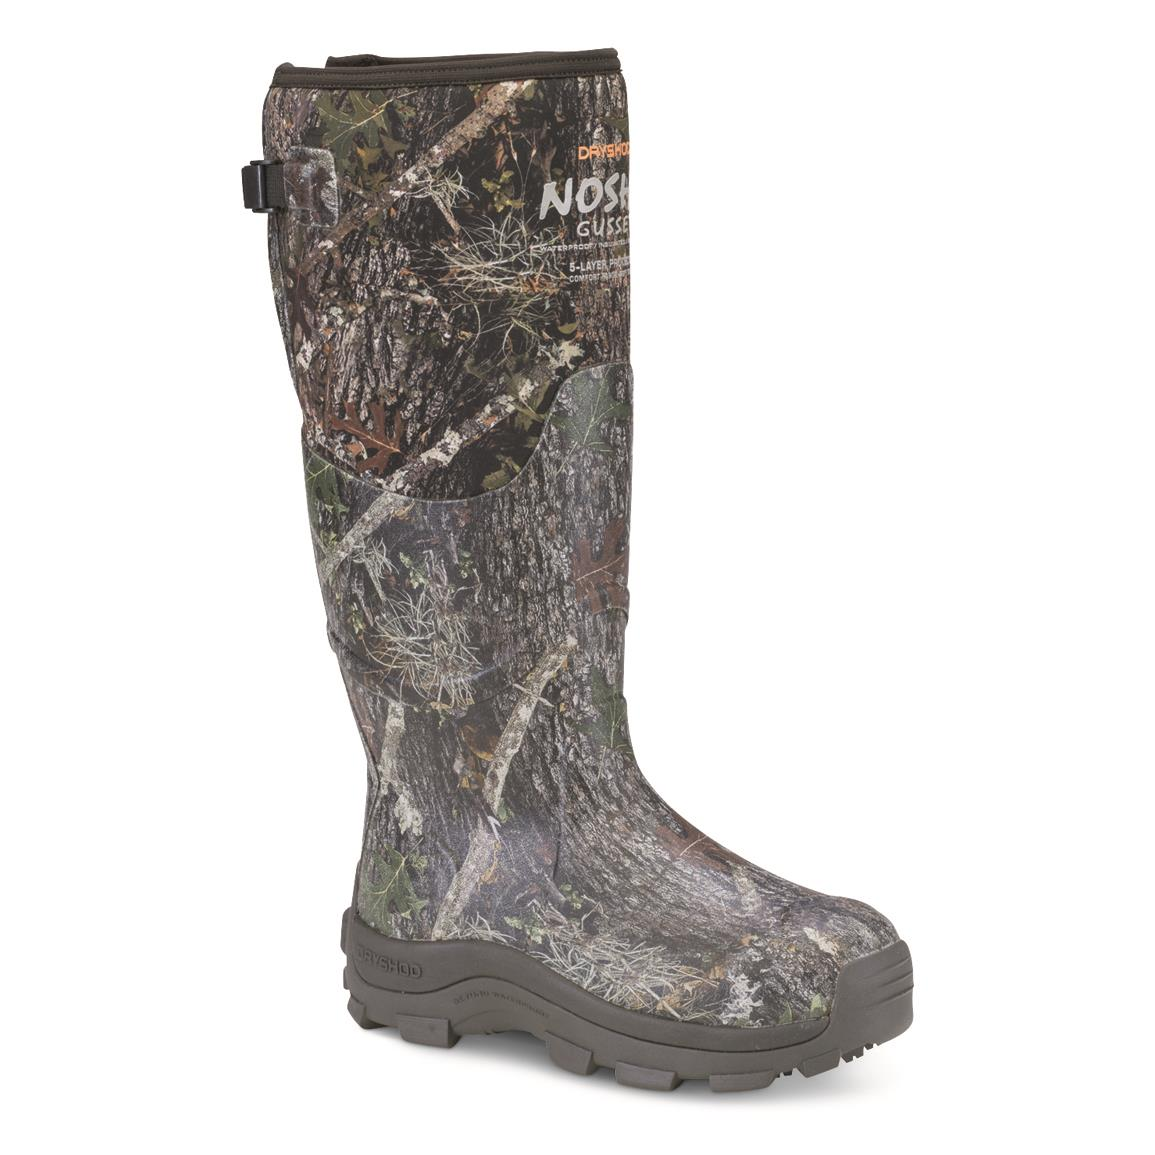 DryShod NOSHO Gusset Ultra Hunt Men's Neoprene Rubber Winter Hunting Boots, -25°F, Camo